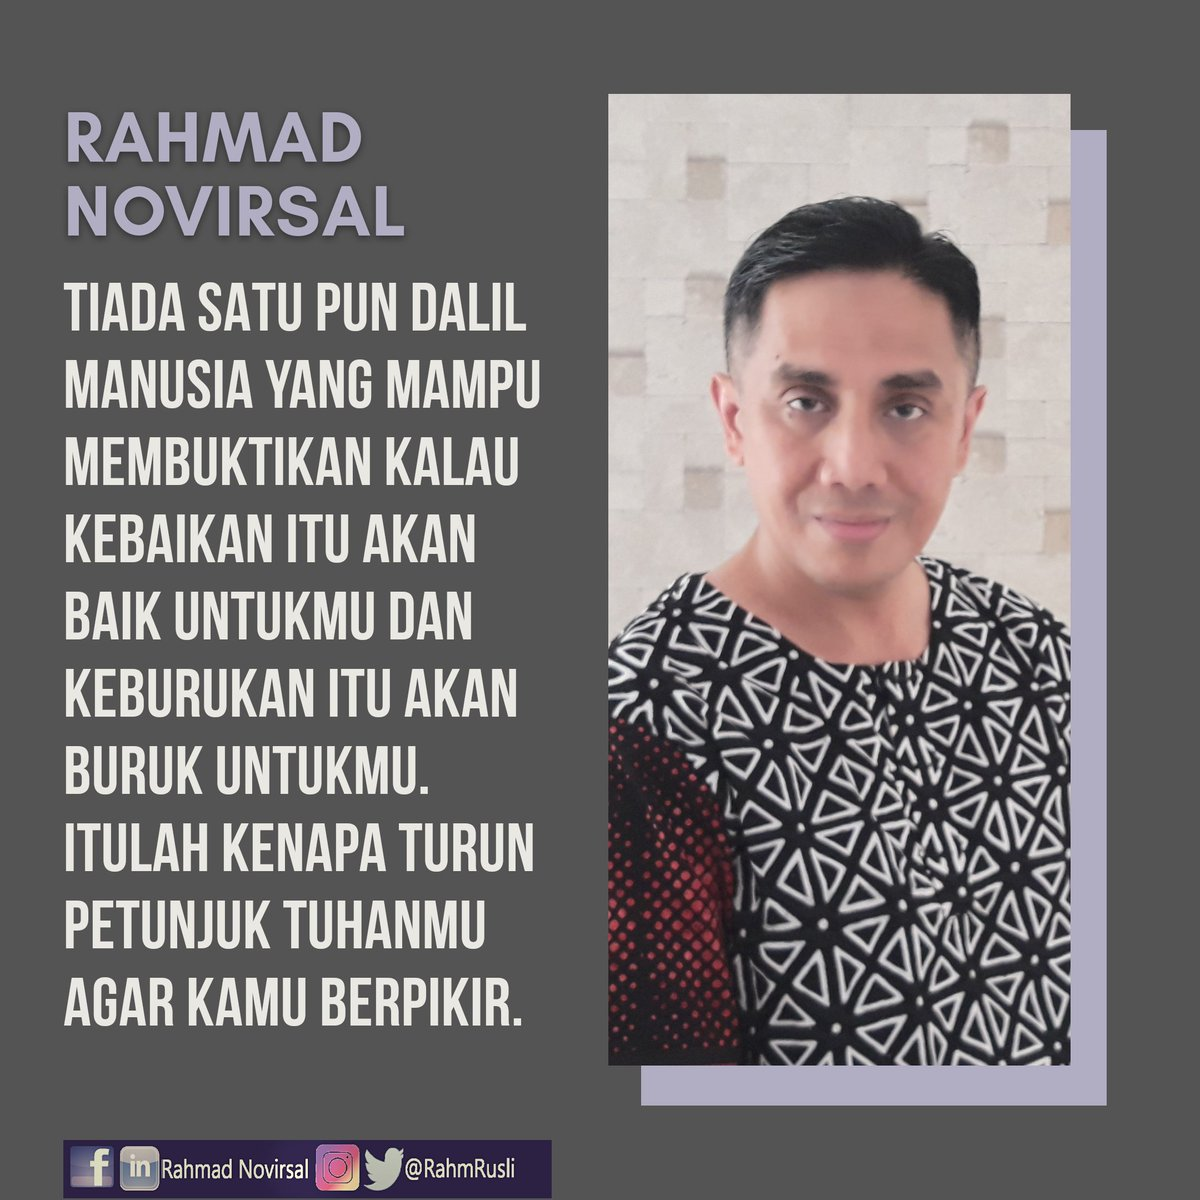 There is no human theorem which can prove that the good will be good for you and the bad will be bad for you. That is why your God sent you guidance for you to think.  #rahmadnovirsal #rahmrusli #marioteguh #mtsc #mtmg #parasuhu #groupreboan #pemulihjiwa #motivator #baikdanburuk